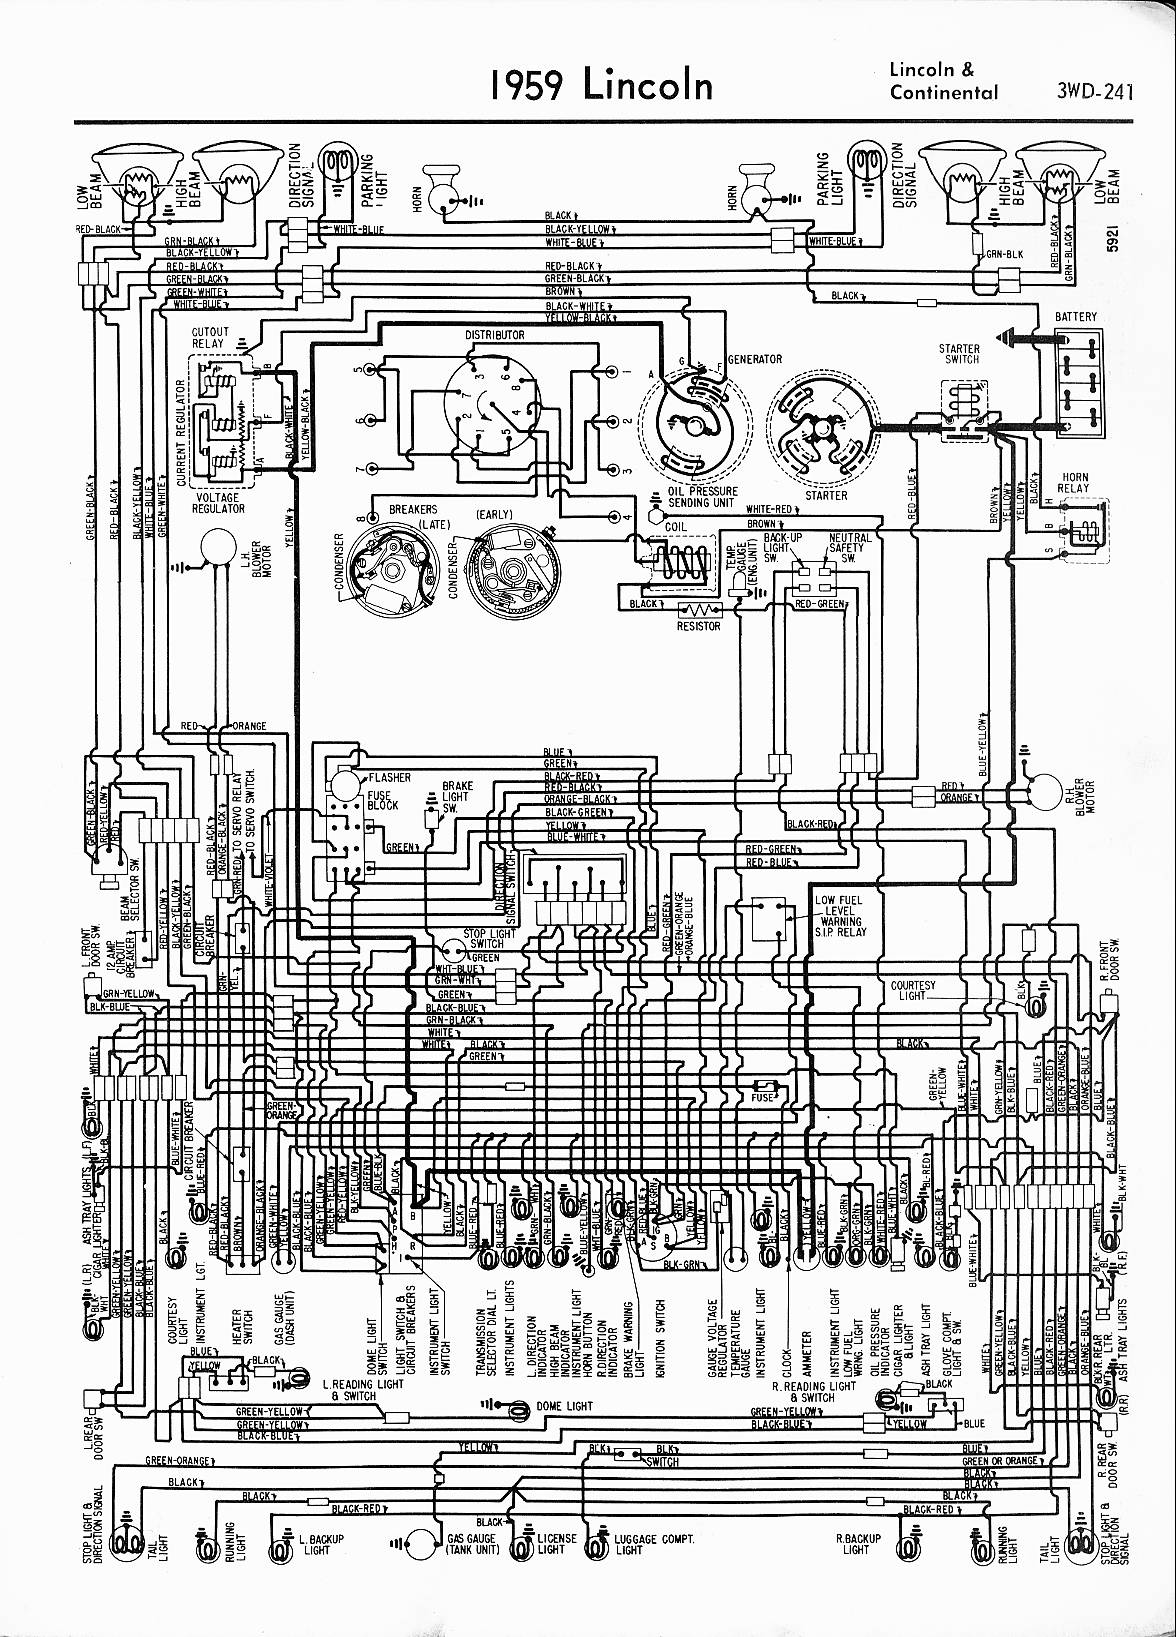 lincoln wiring diagrams: 1957 - 1965, Wiring diagram